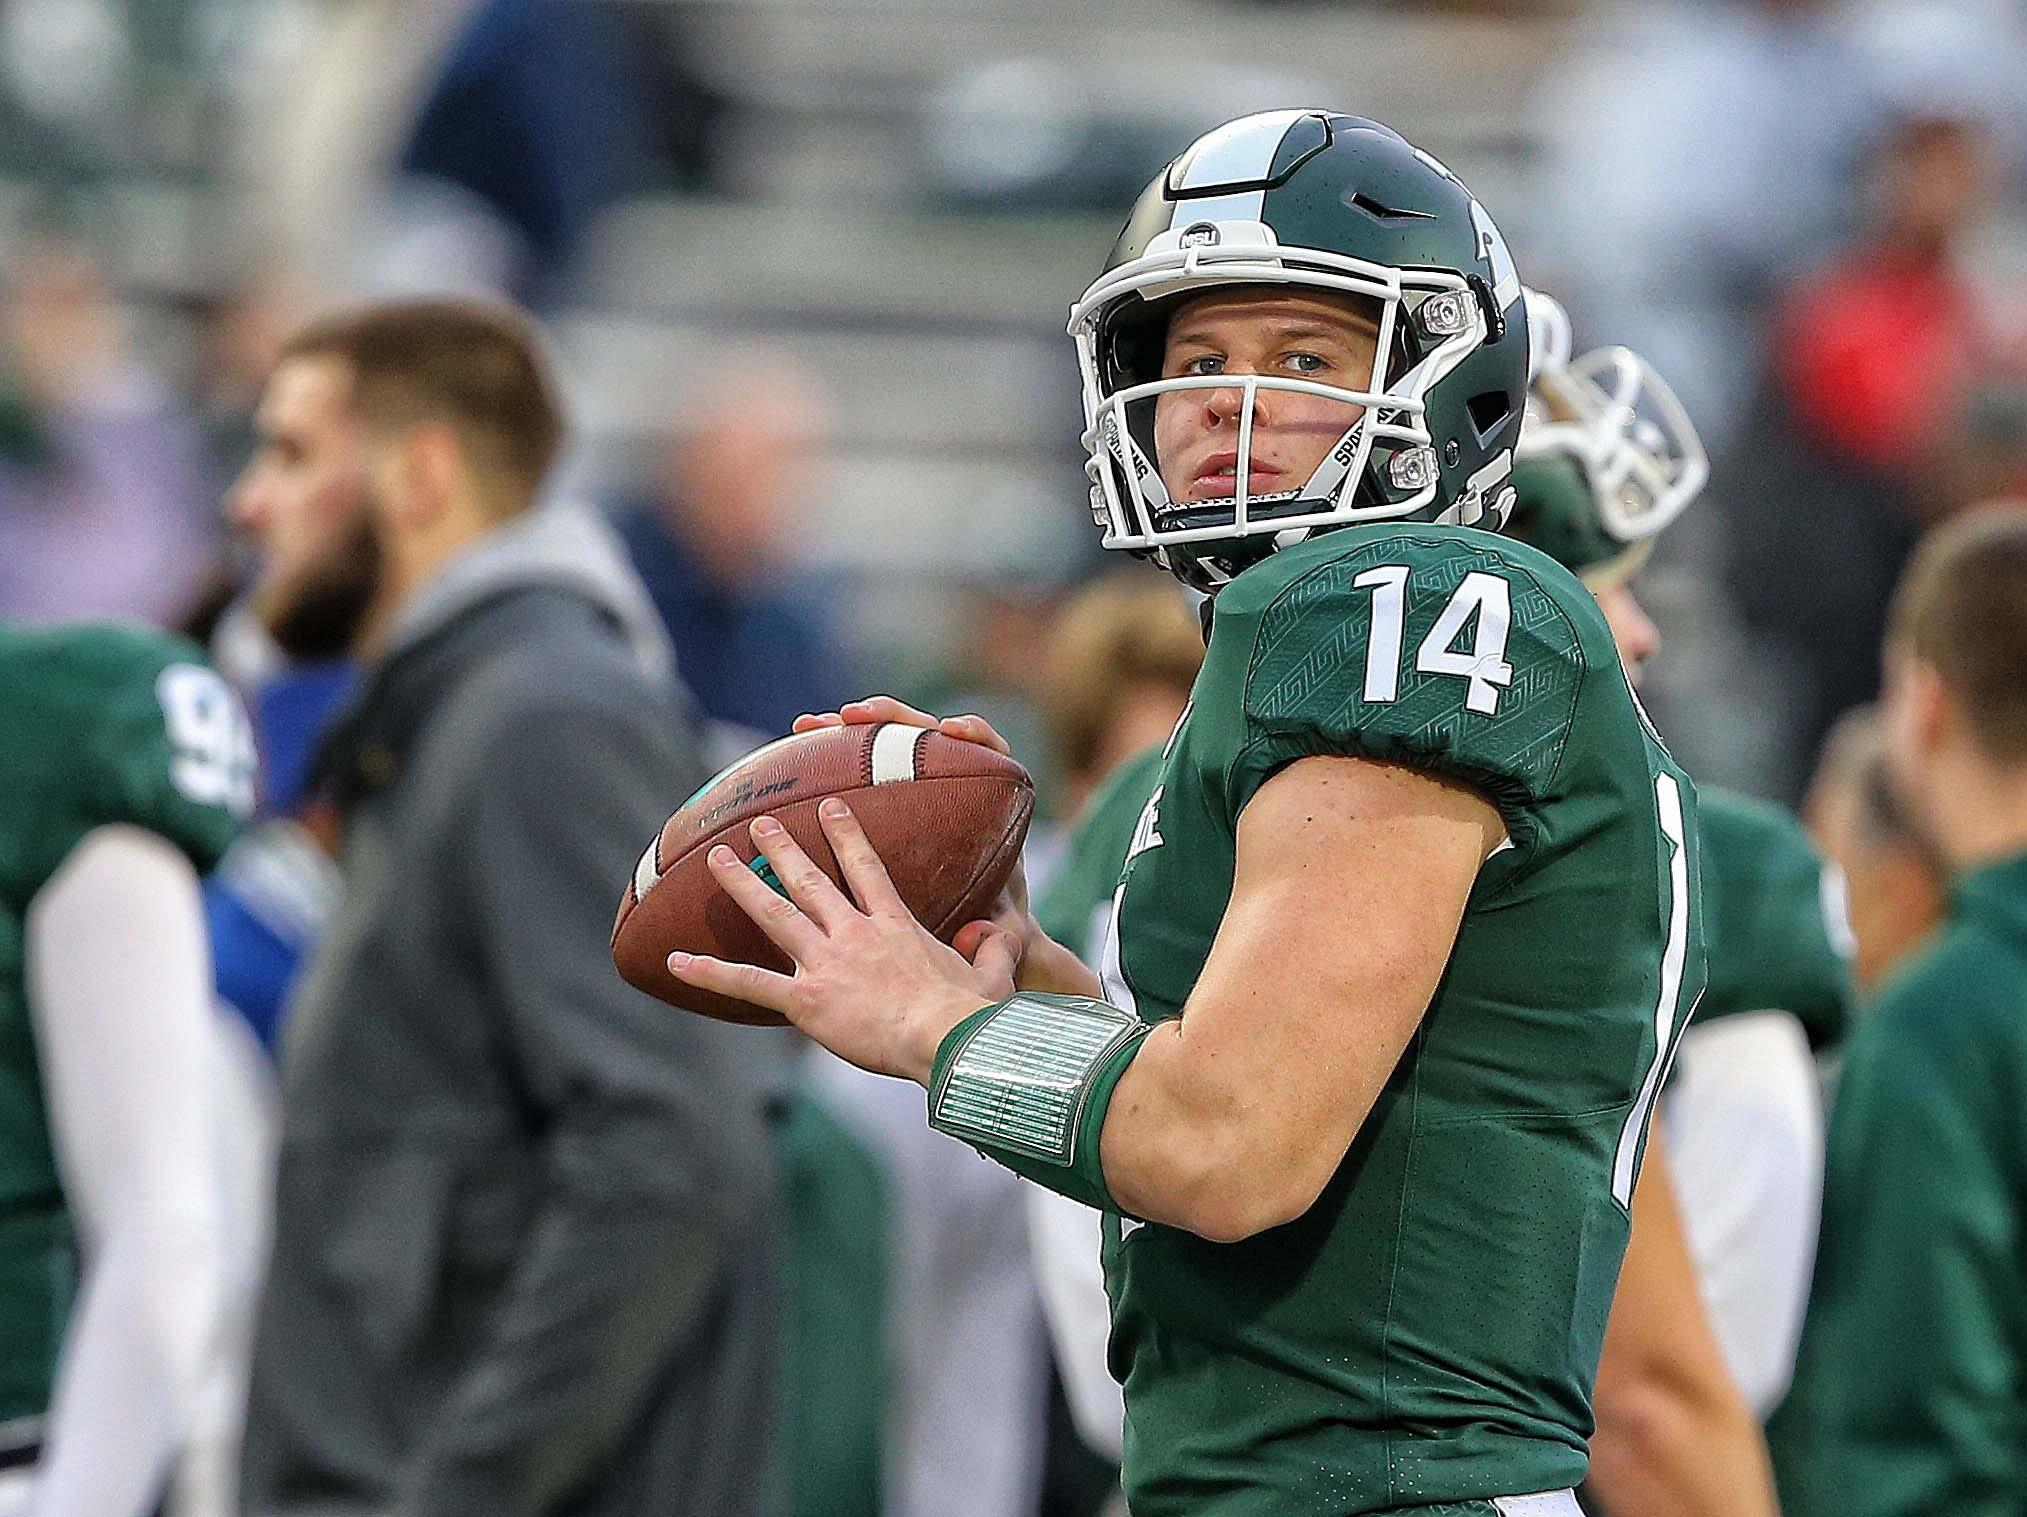 Nov 24, 2018; East Lansing, MI, USA; Michigan State Spartans quarterback Brian Lewerke (14) warms up prior to  a game against the Rutgers Scarlet Knights at Spartan Stadium on Nov. 24, 2018.